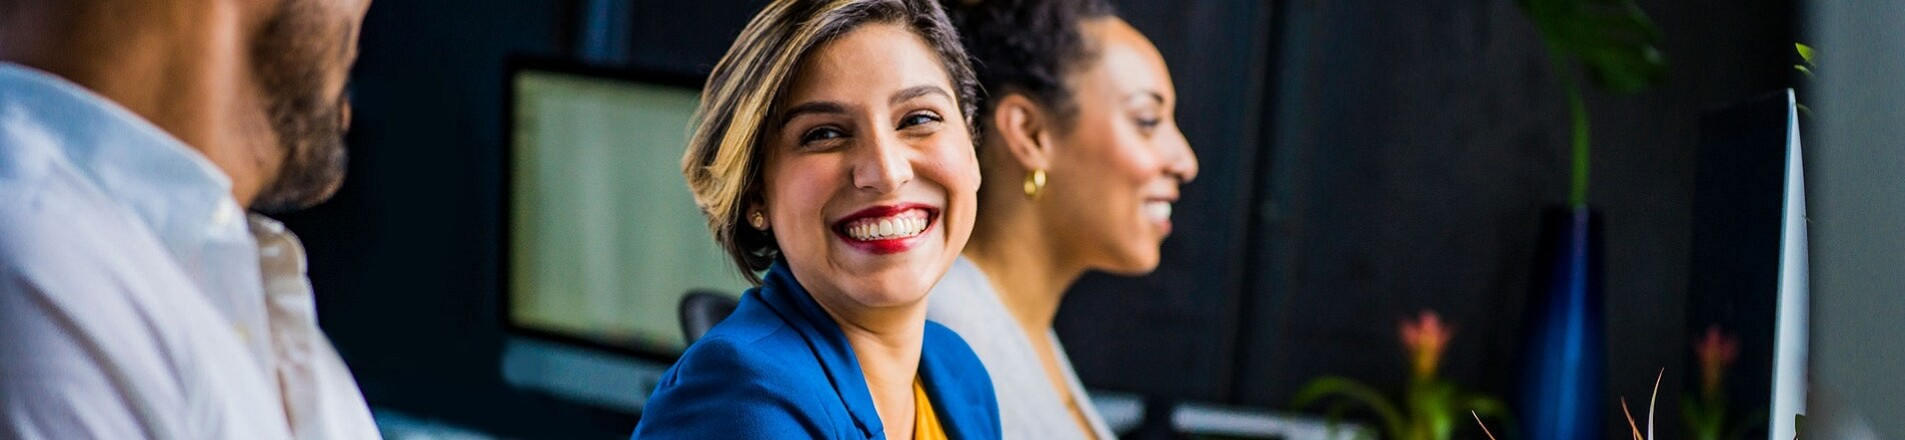 Marketers increasingly using images of diversity